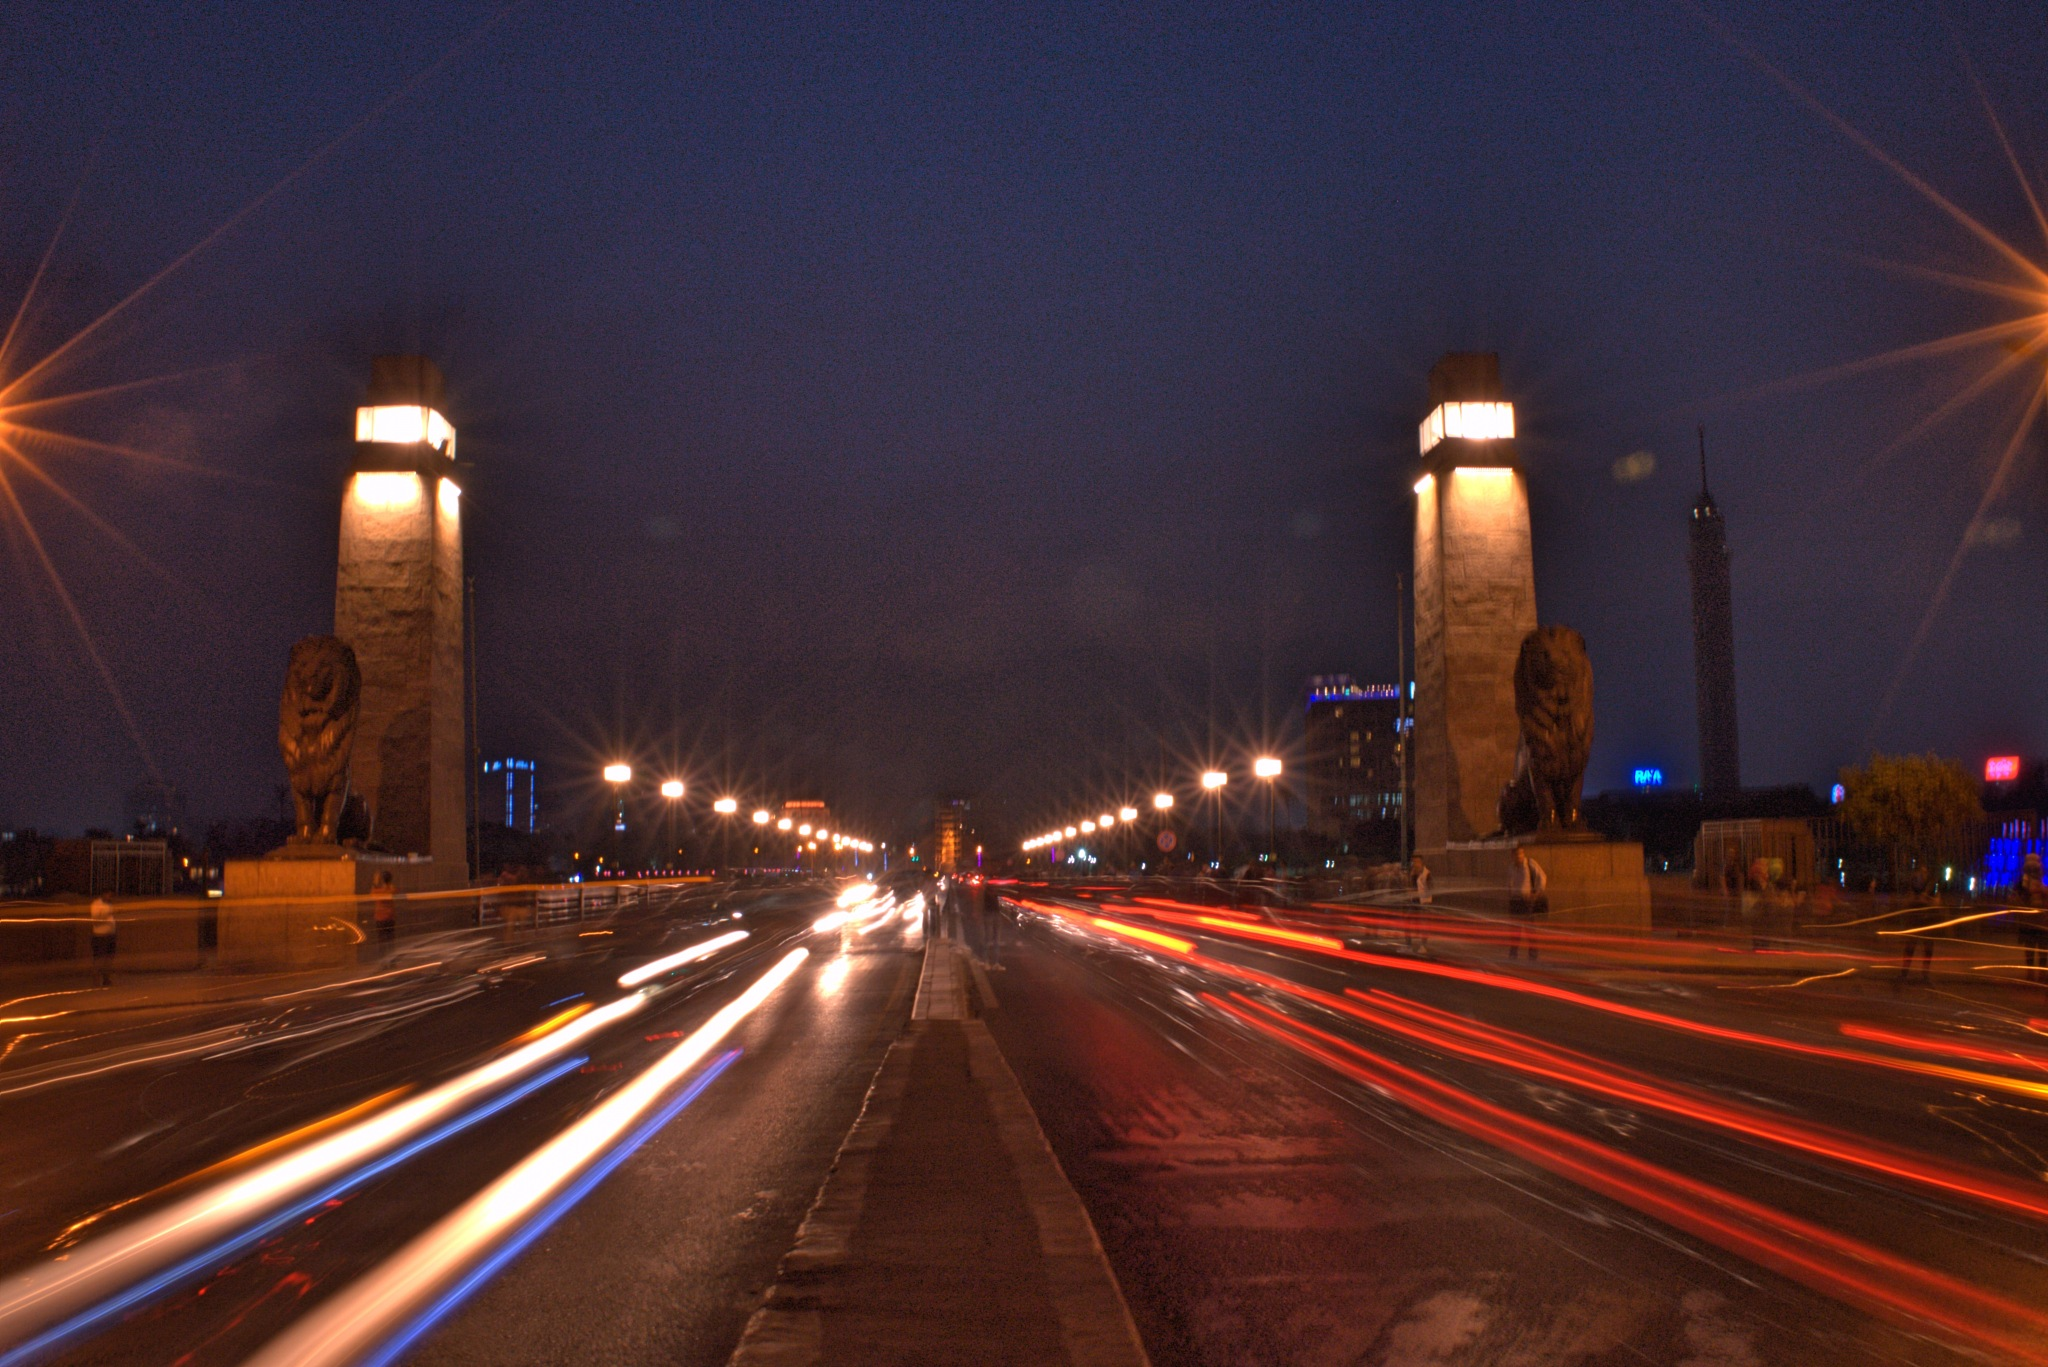 Lights and Speed by OmAr M. Abd-Ulkader